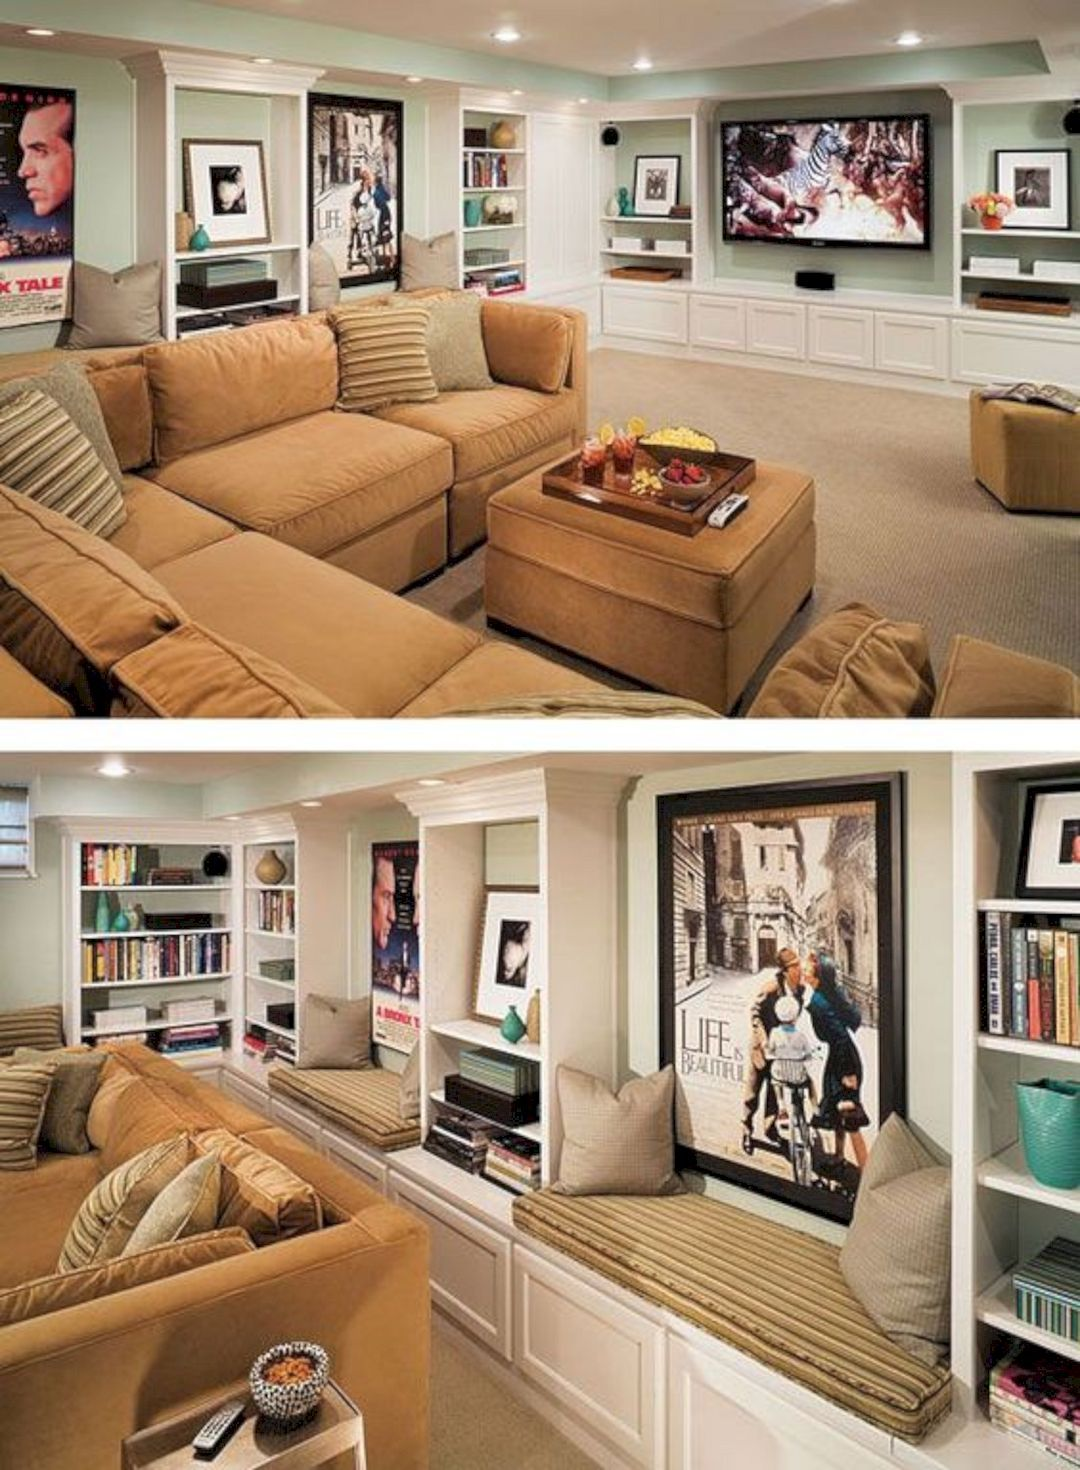 15 Top Raised Ranch Interior Design Ideas to Steal | Gorgeous ...